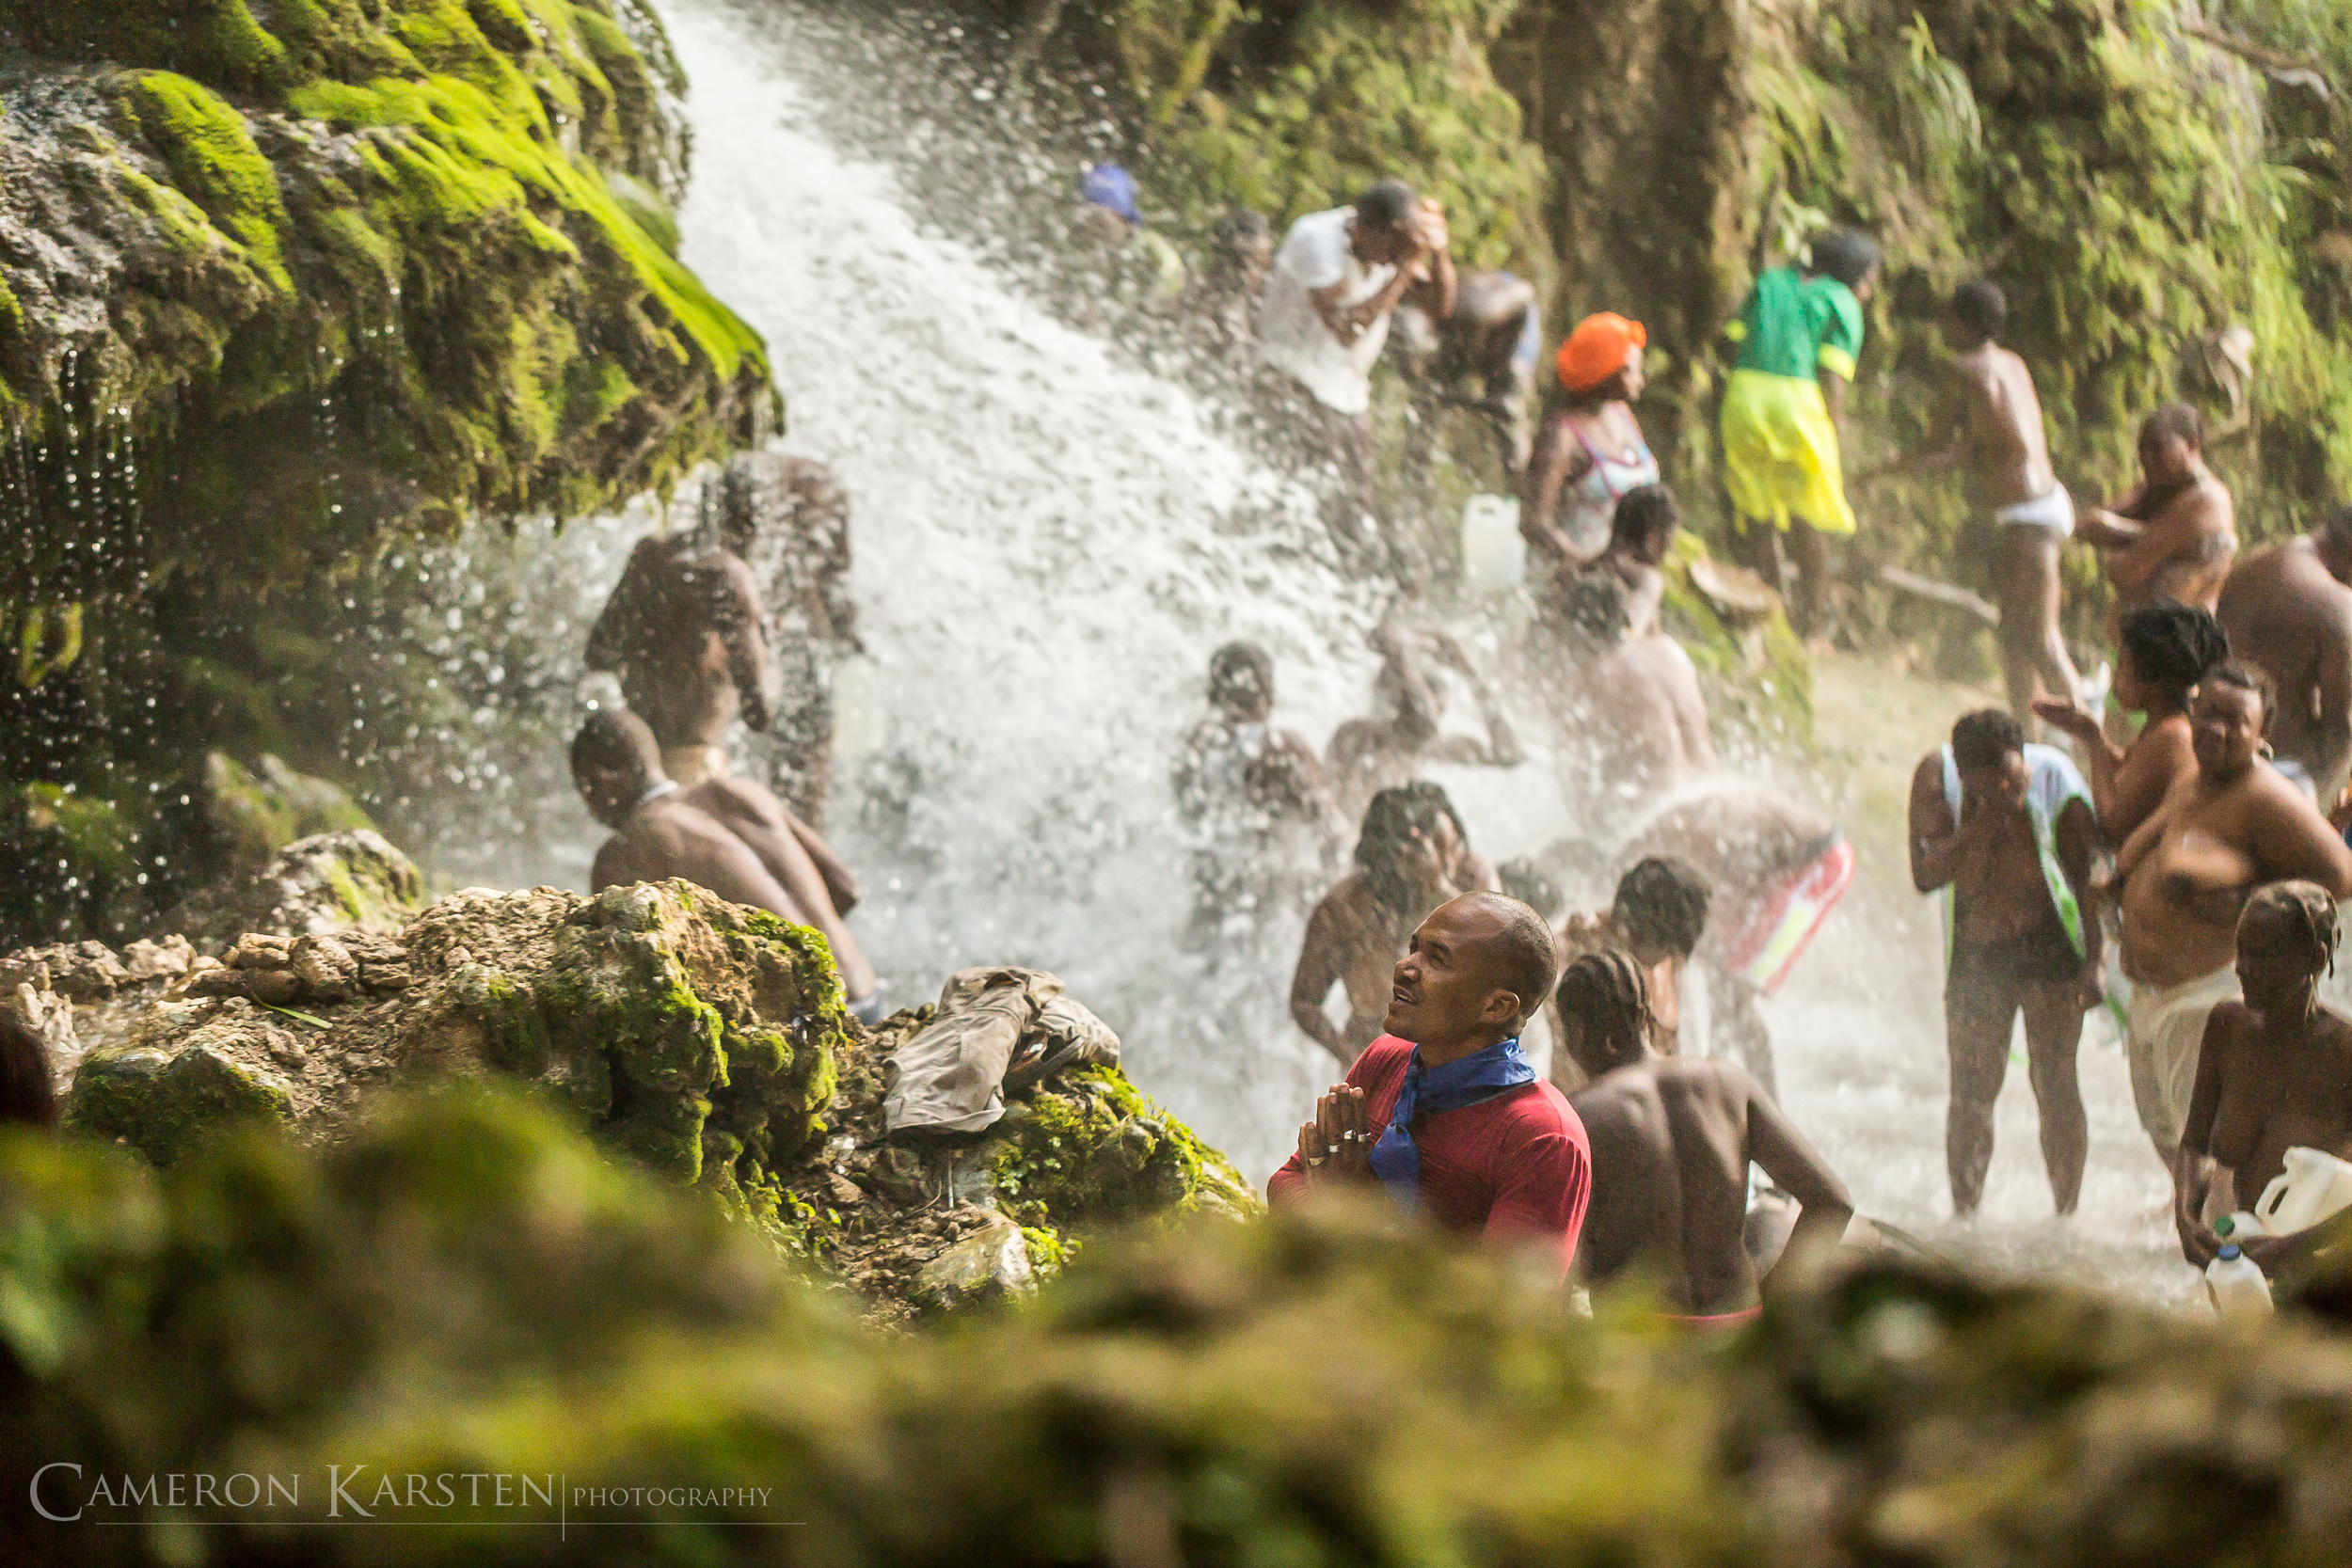 Haitian women bathing naked